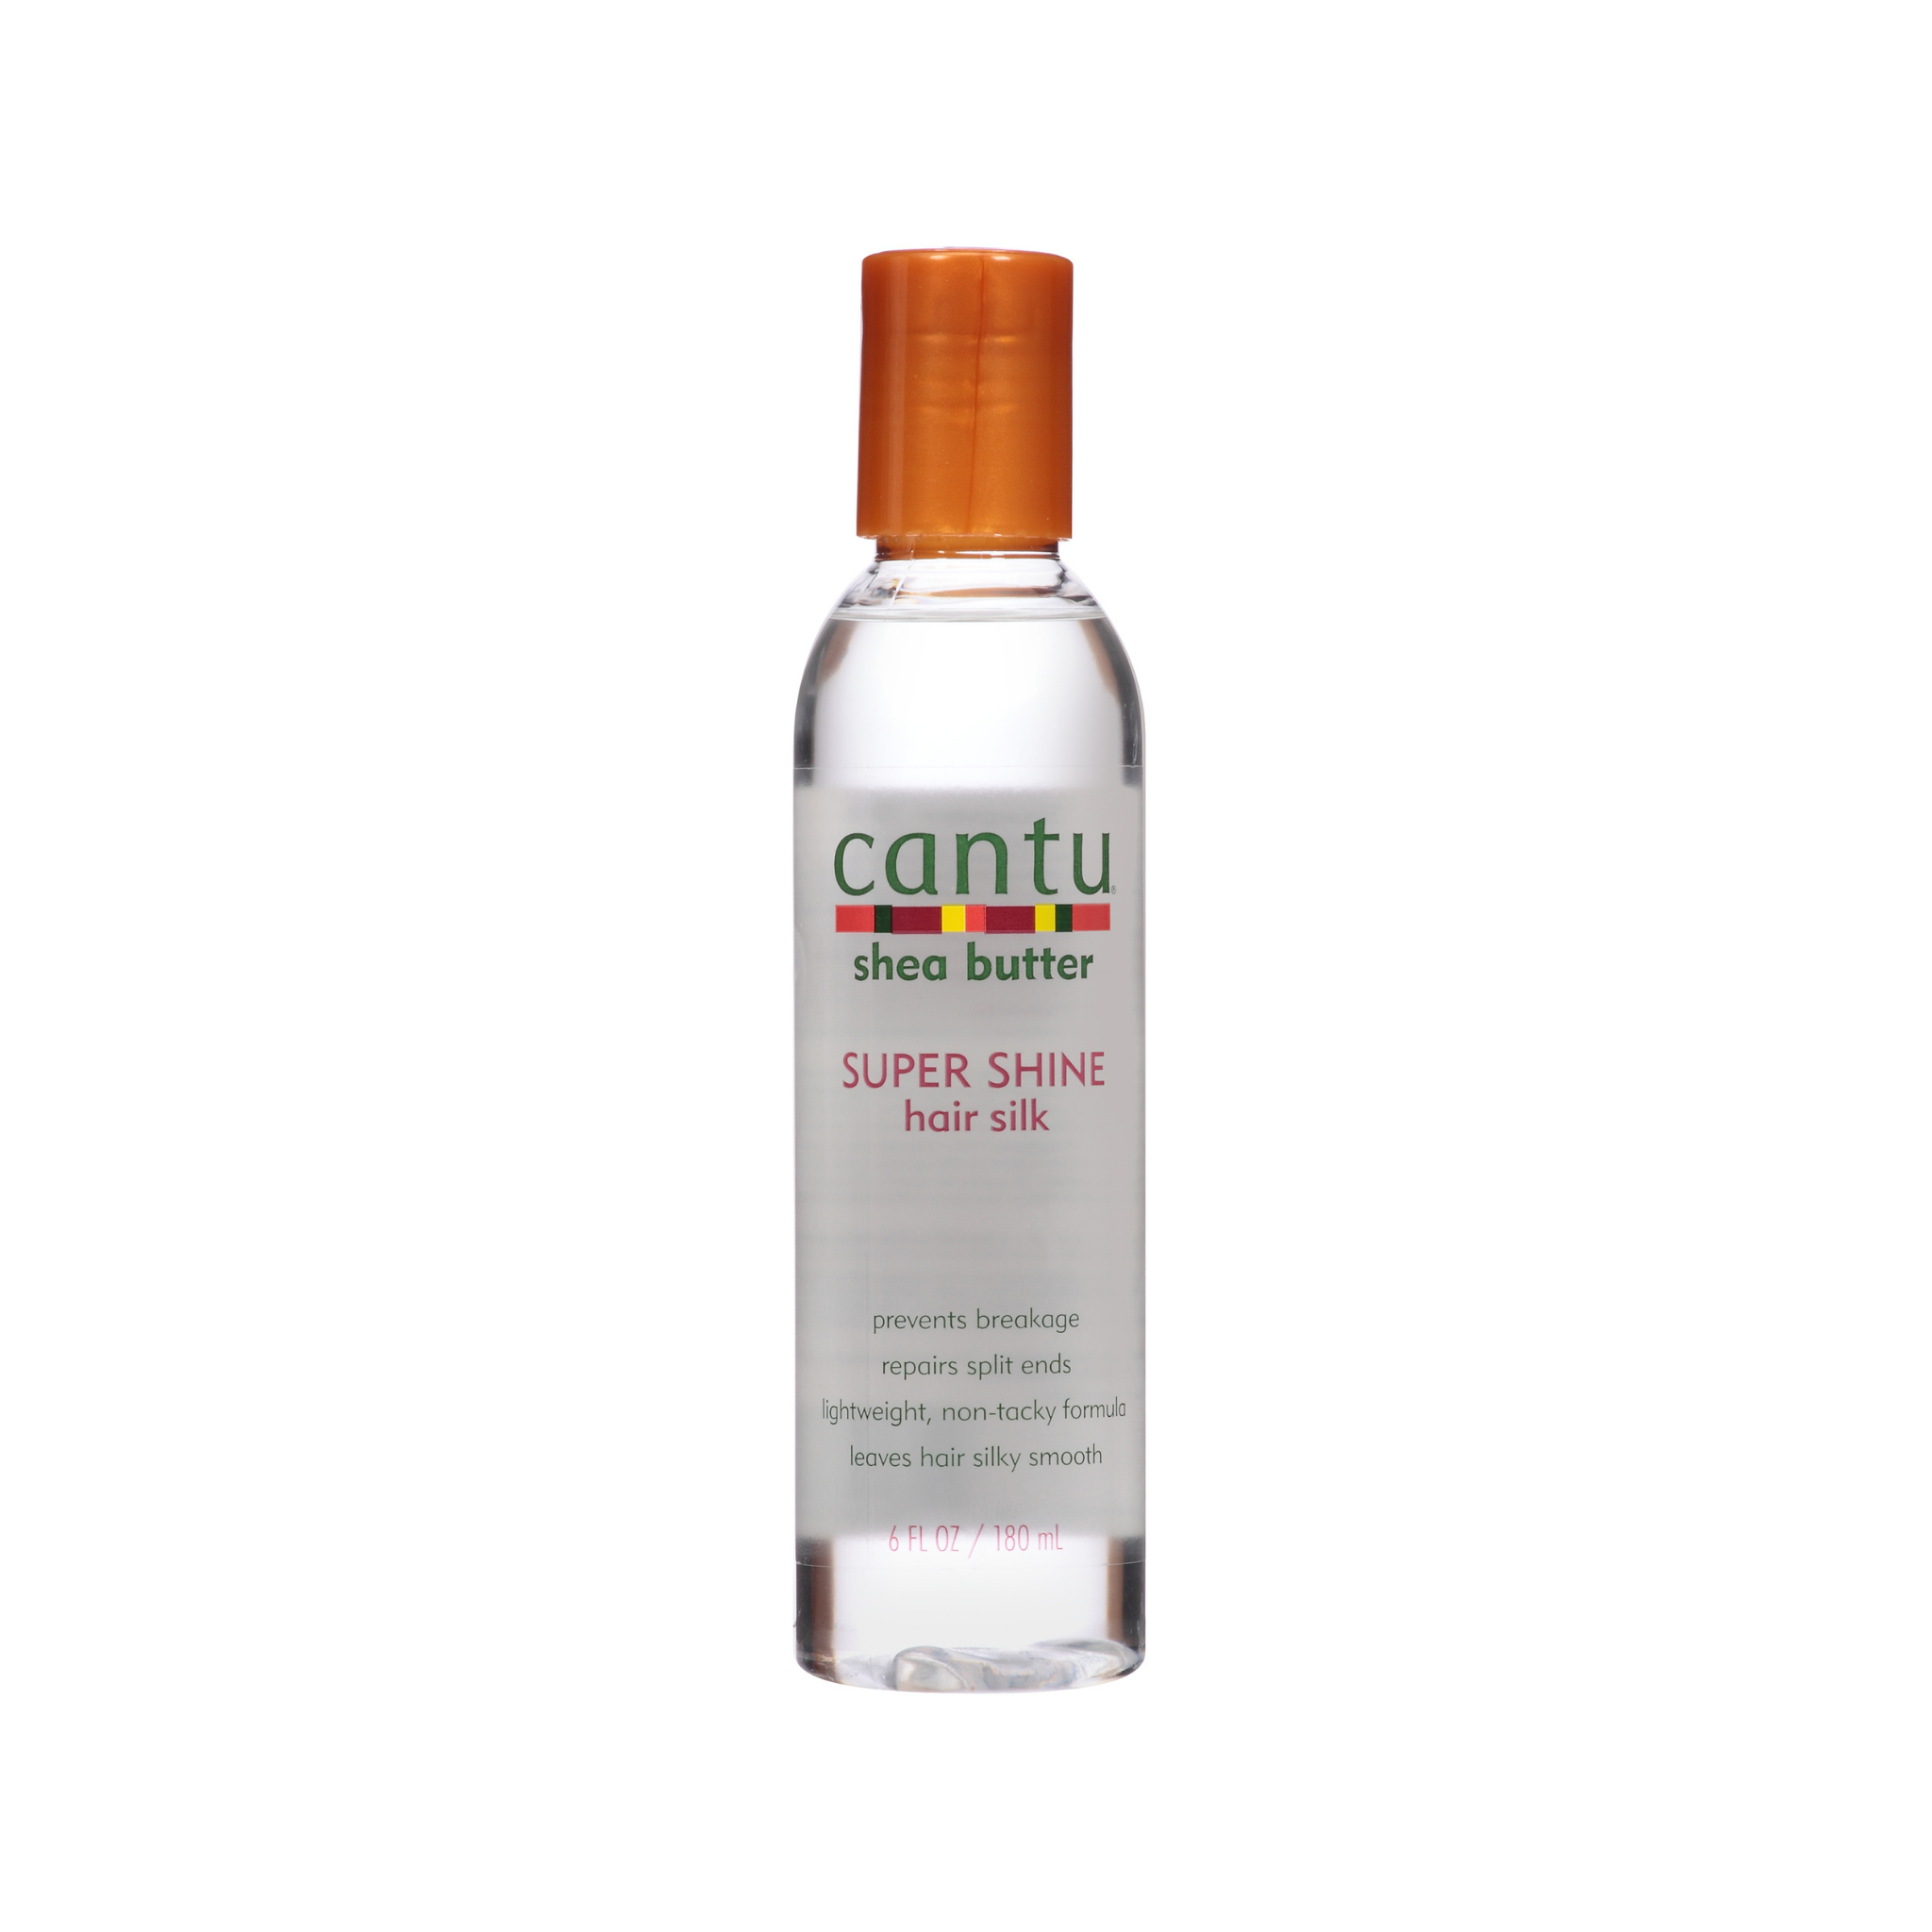 Cantu Super Shine Hair Silk